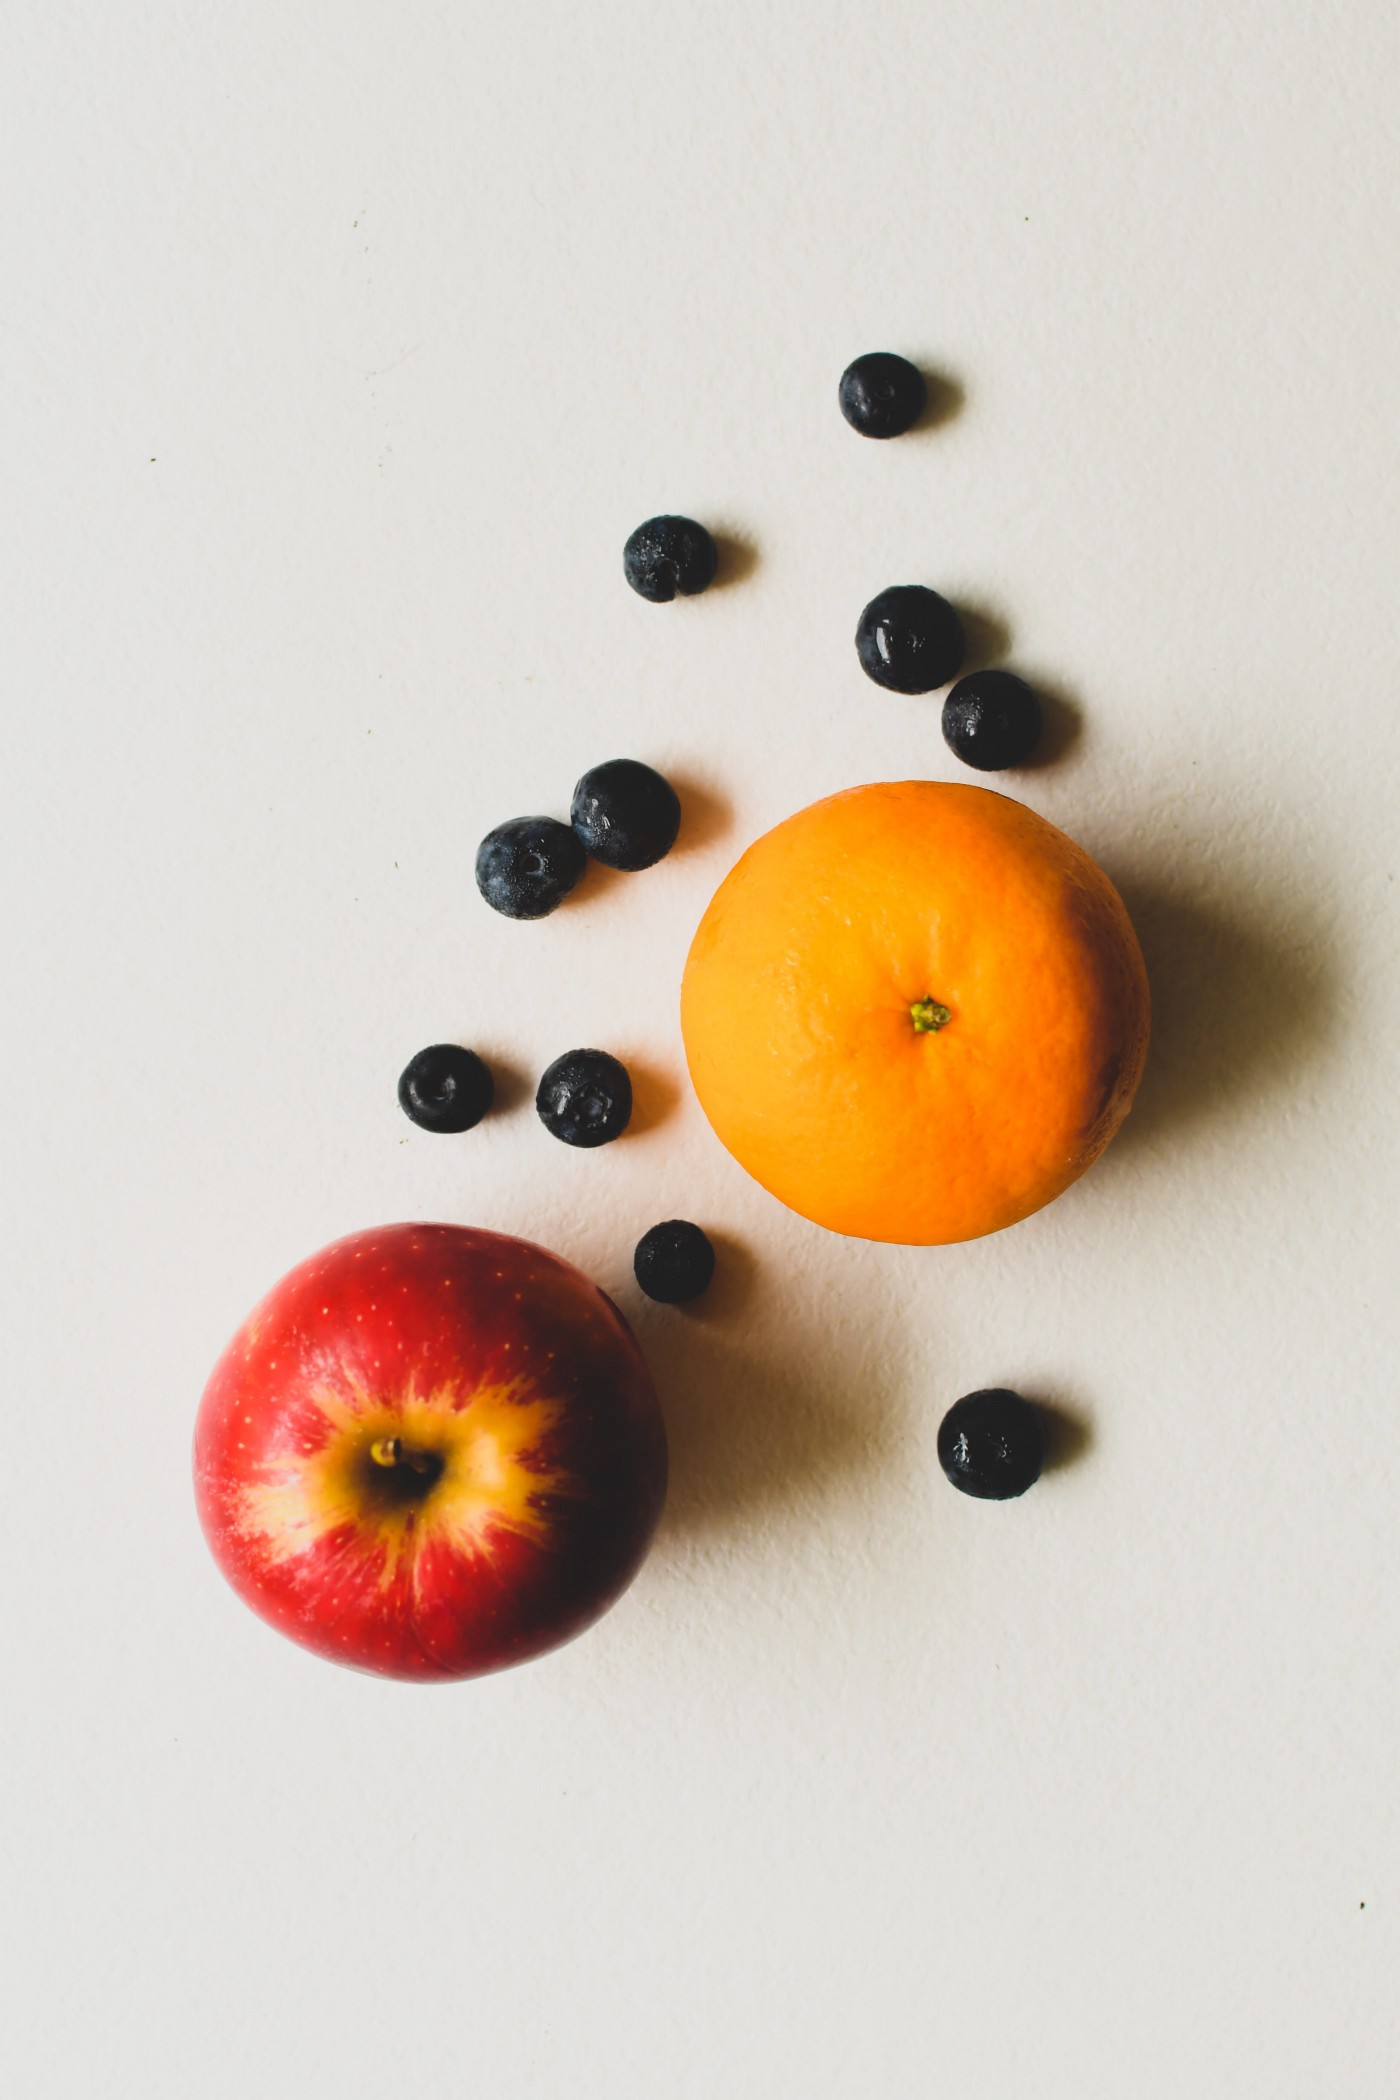 One apple, one orange, and a handful of blueberries